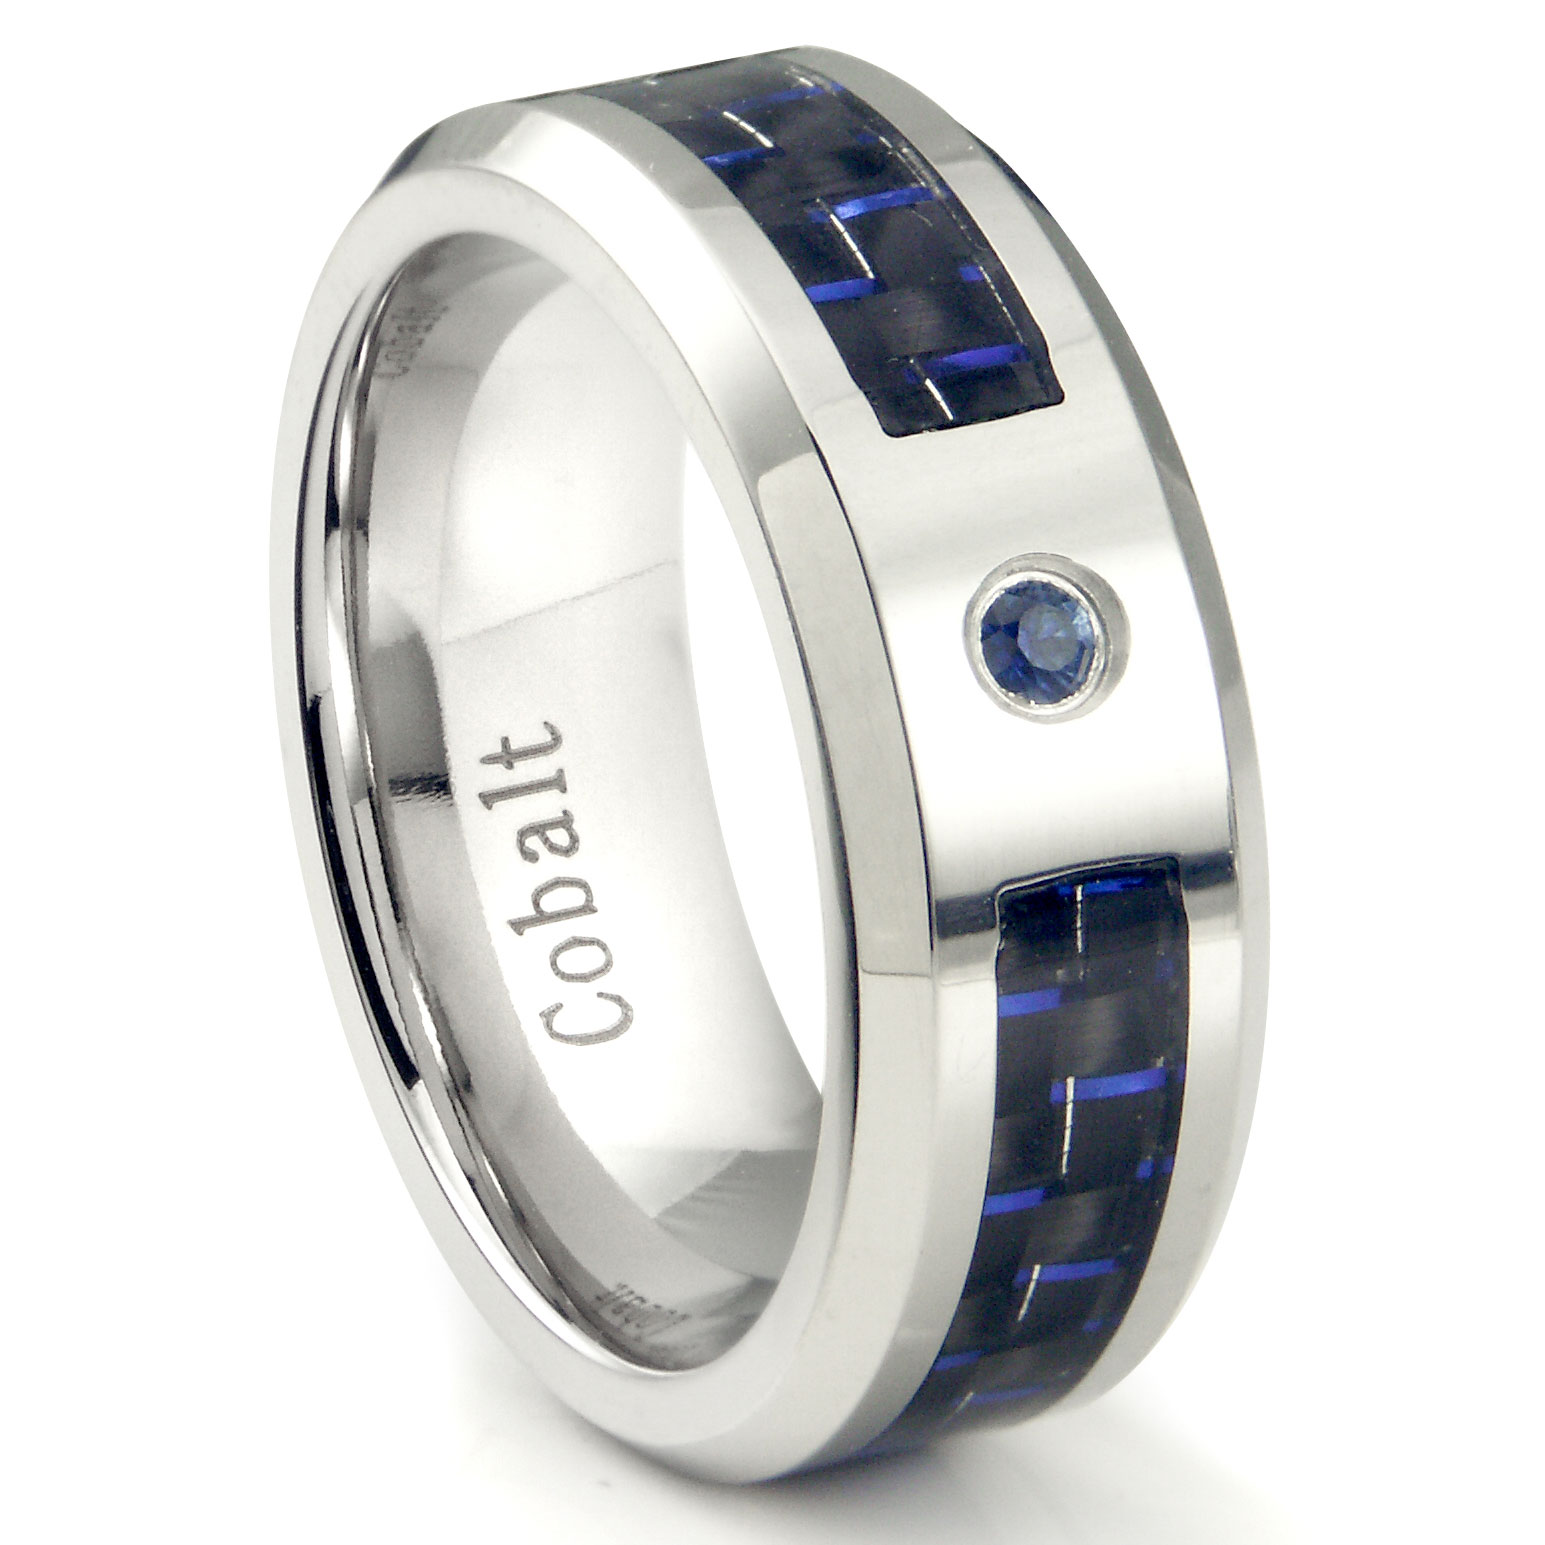 comfort s com cobalt ring amazon dp fit milgrain wedding band men rings brushed